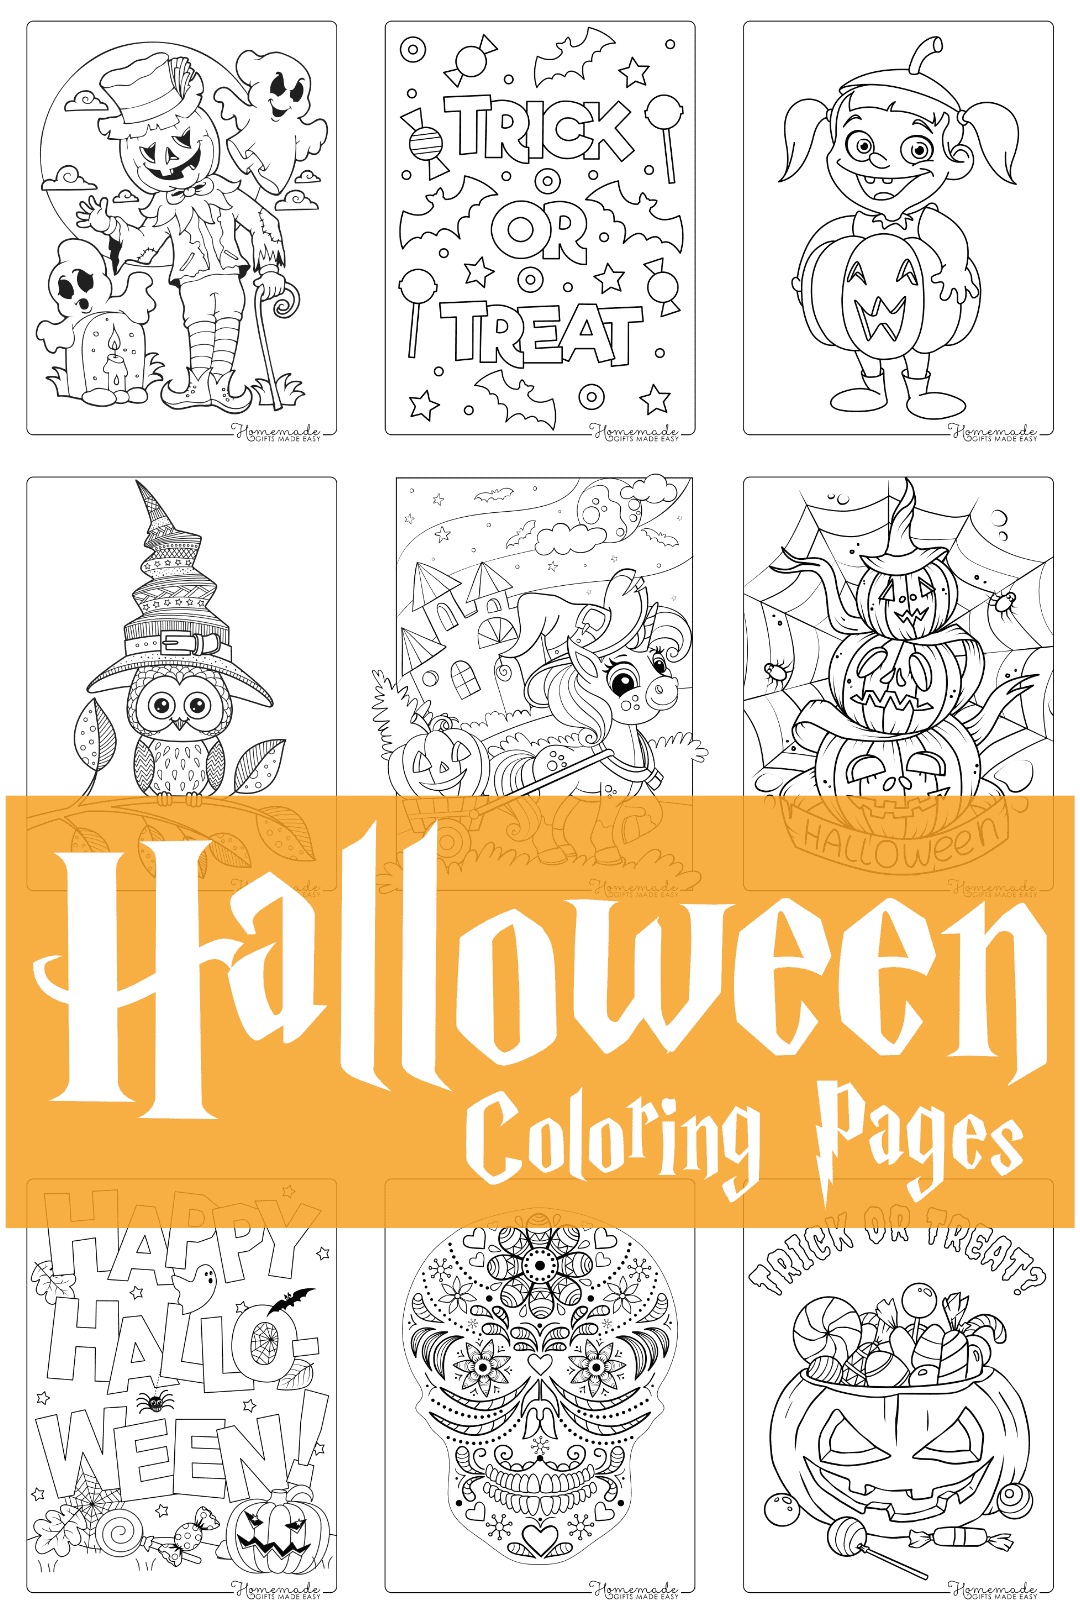 halloween coloring pages - 75 Free Printable PDFs